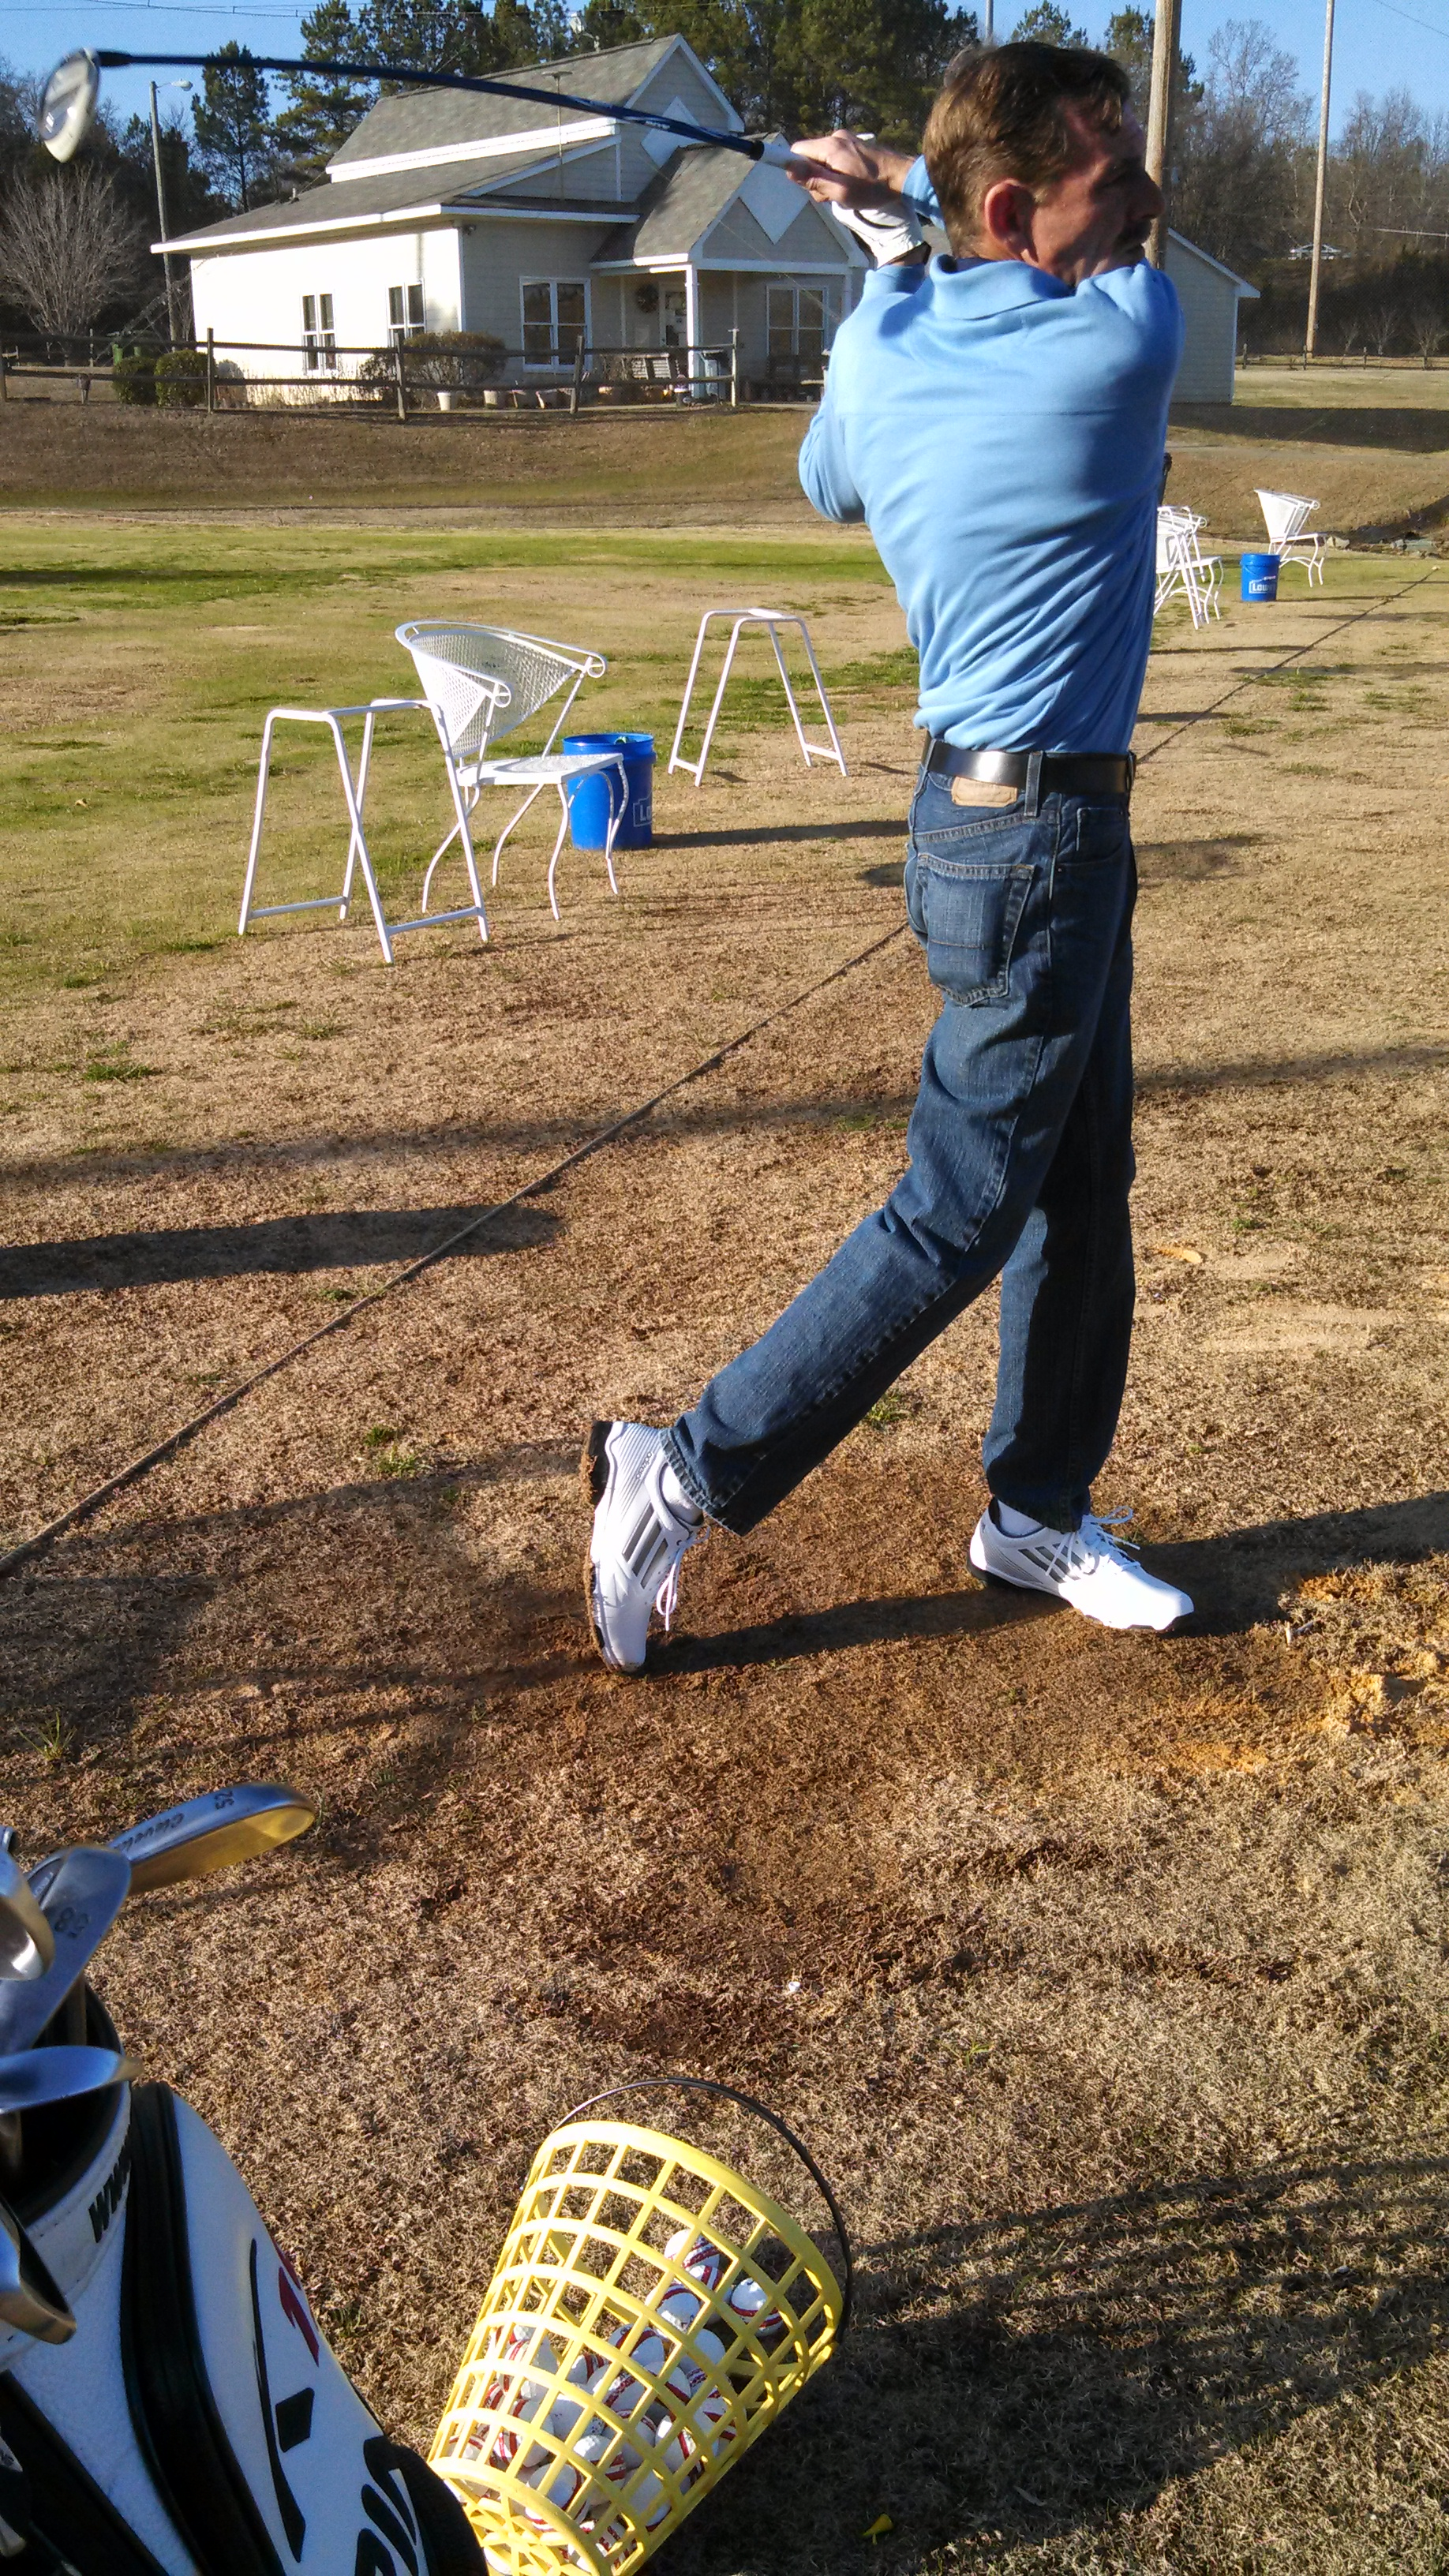 The 10 Best Golf Lessons In Chapel Hill Nc For All Ages Levels